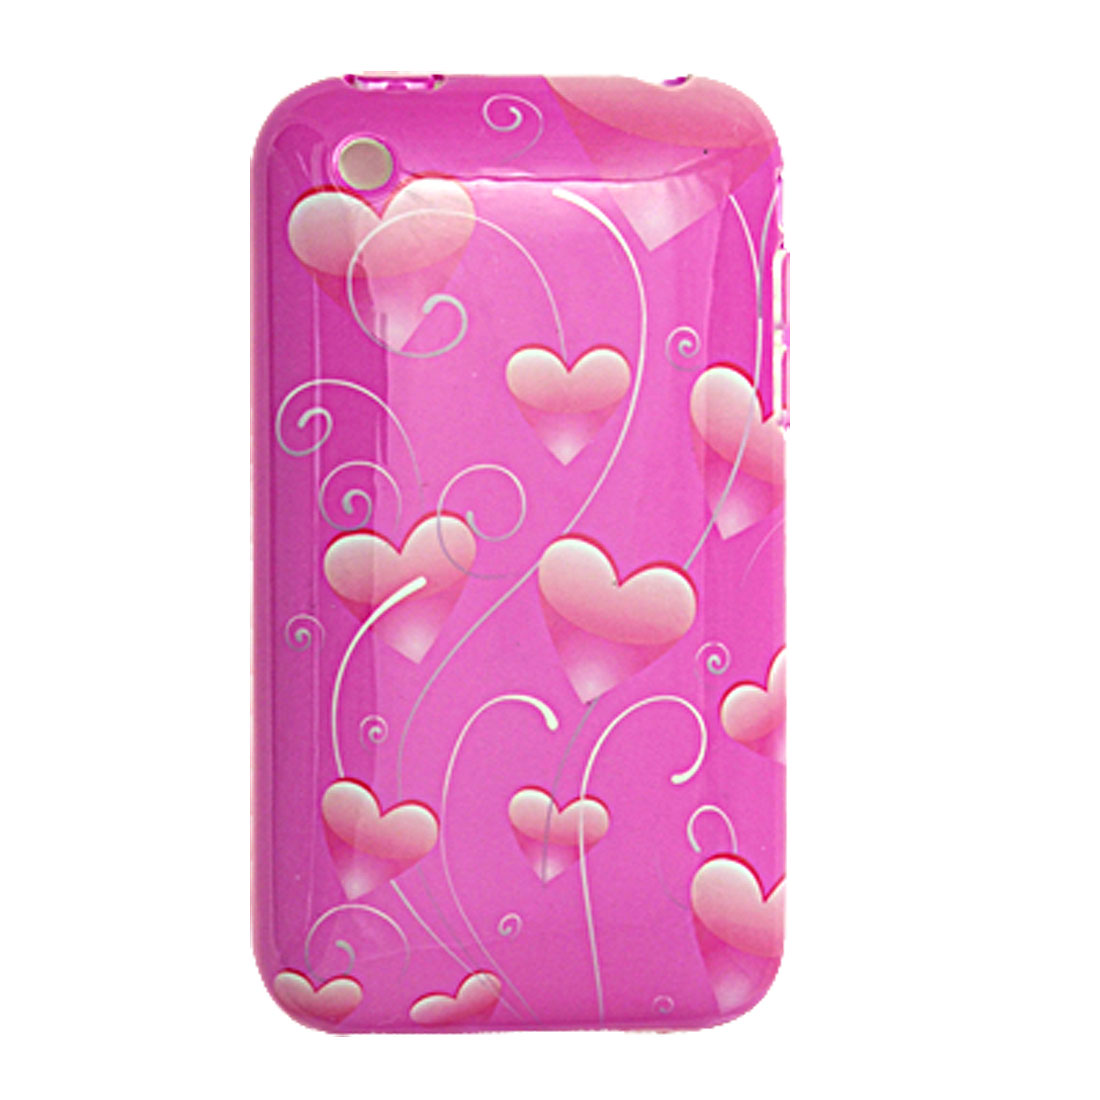 Heart Pattern Hard Case Cover Protector for iPhone 3G